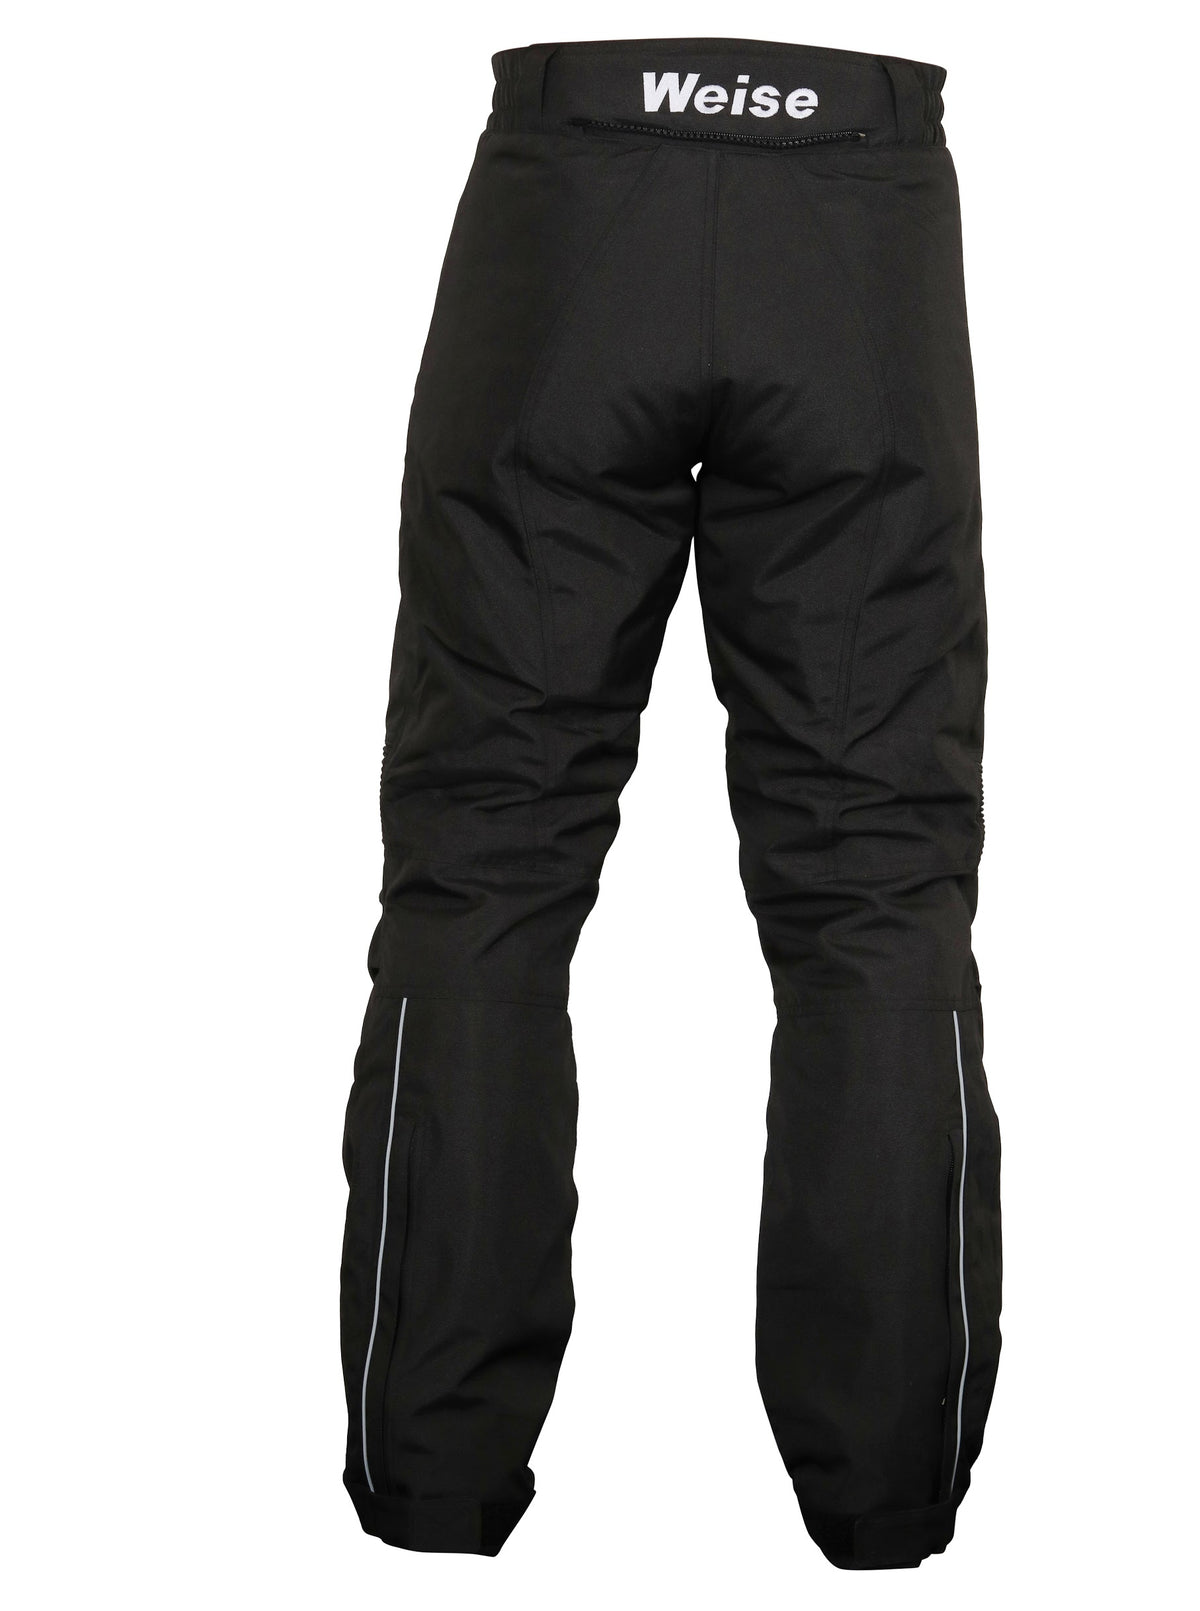 Weise Trousers - Core, Trousers, Weise - Averys Motorcycles